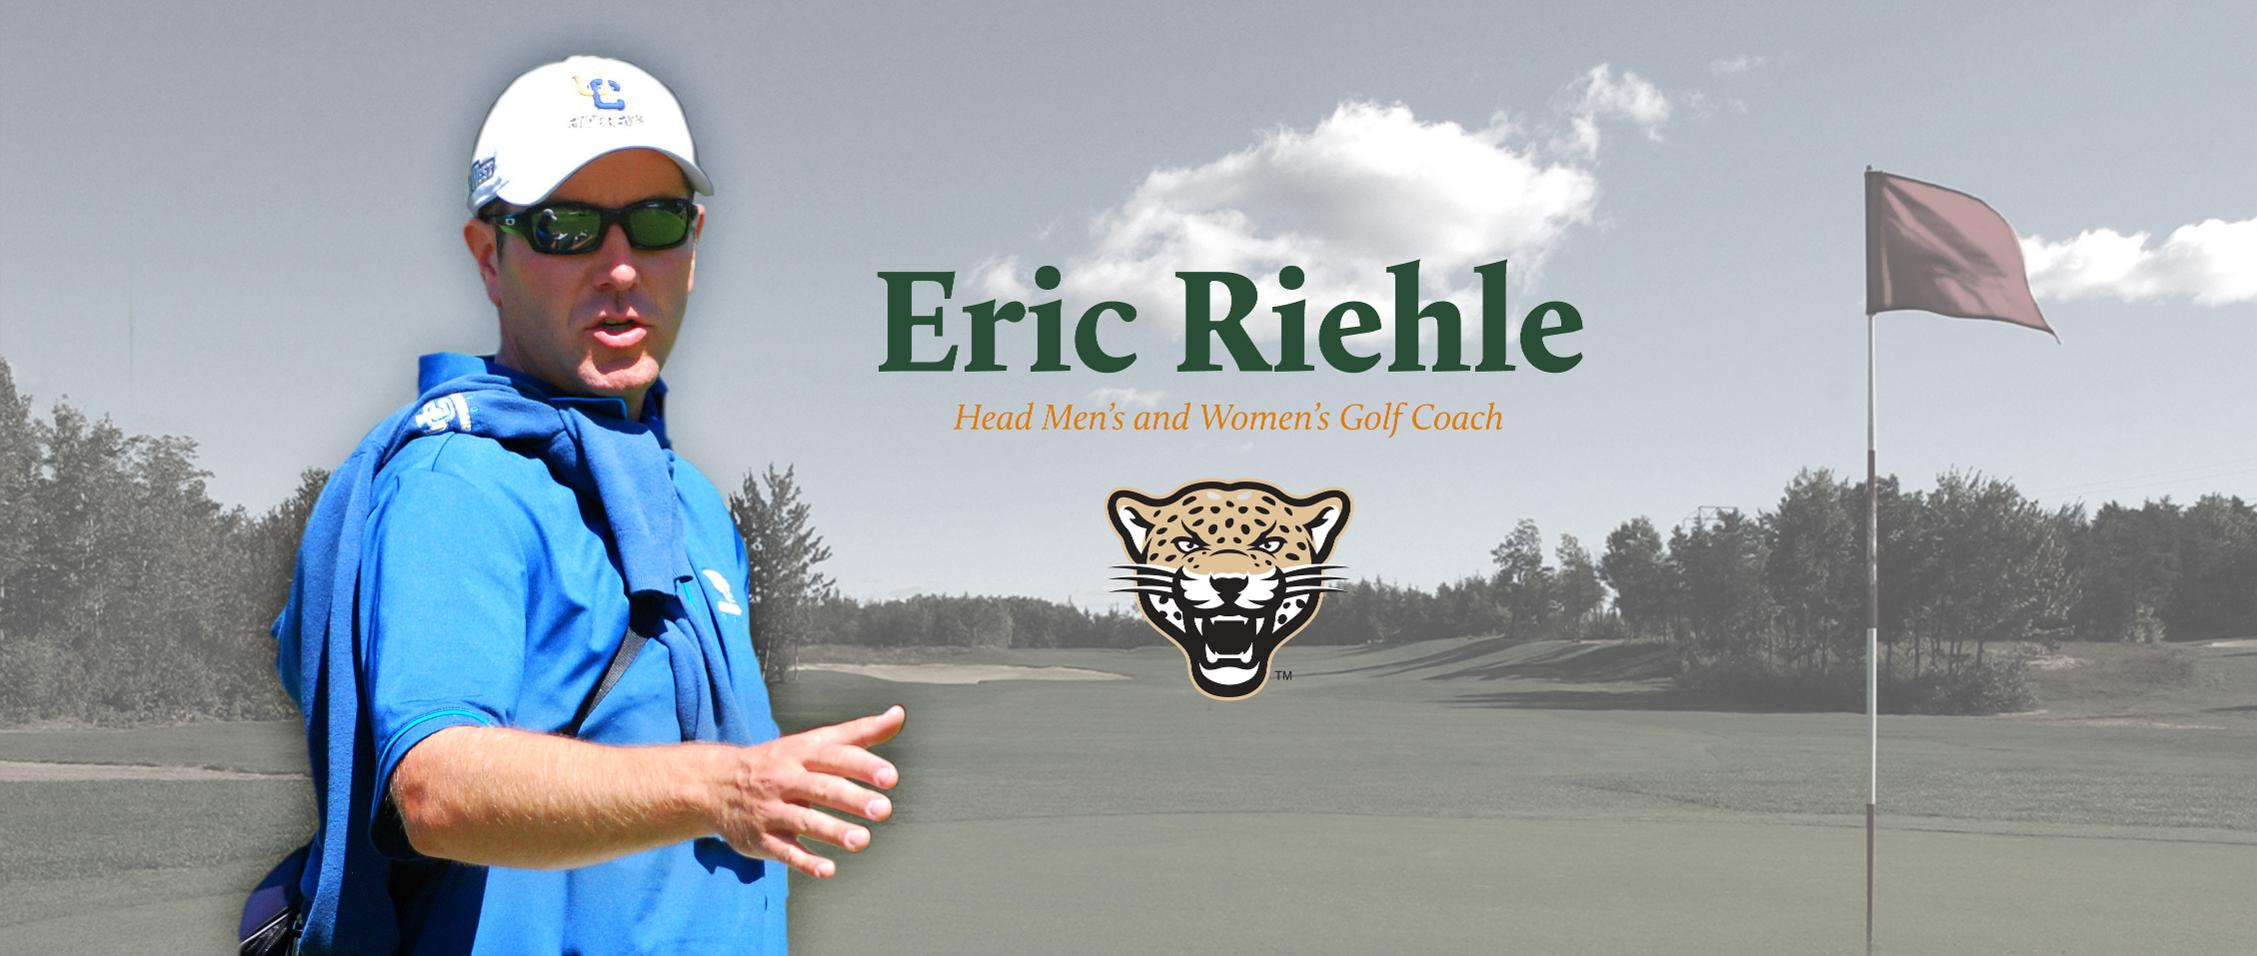 Eric Riehle returns to La Verne